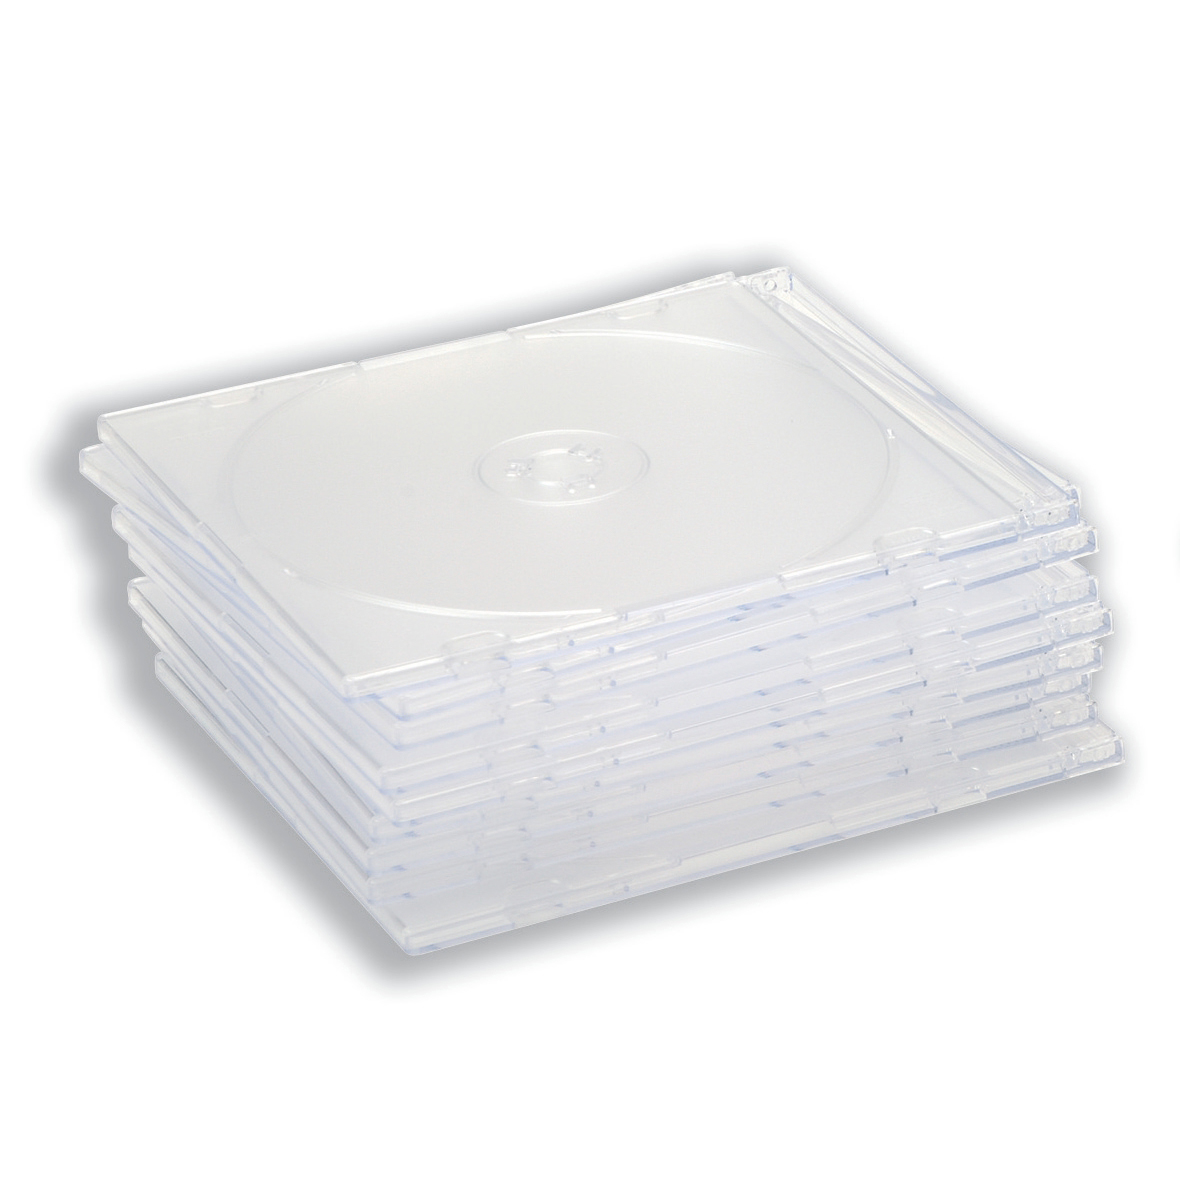 Compact disk cases CD Slimline Jewel Case Clear Pack 100